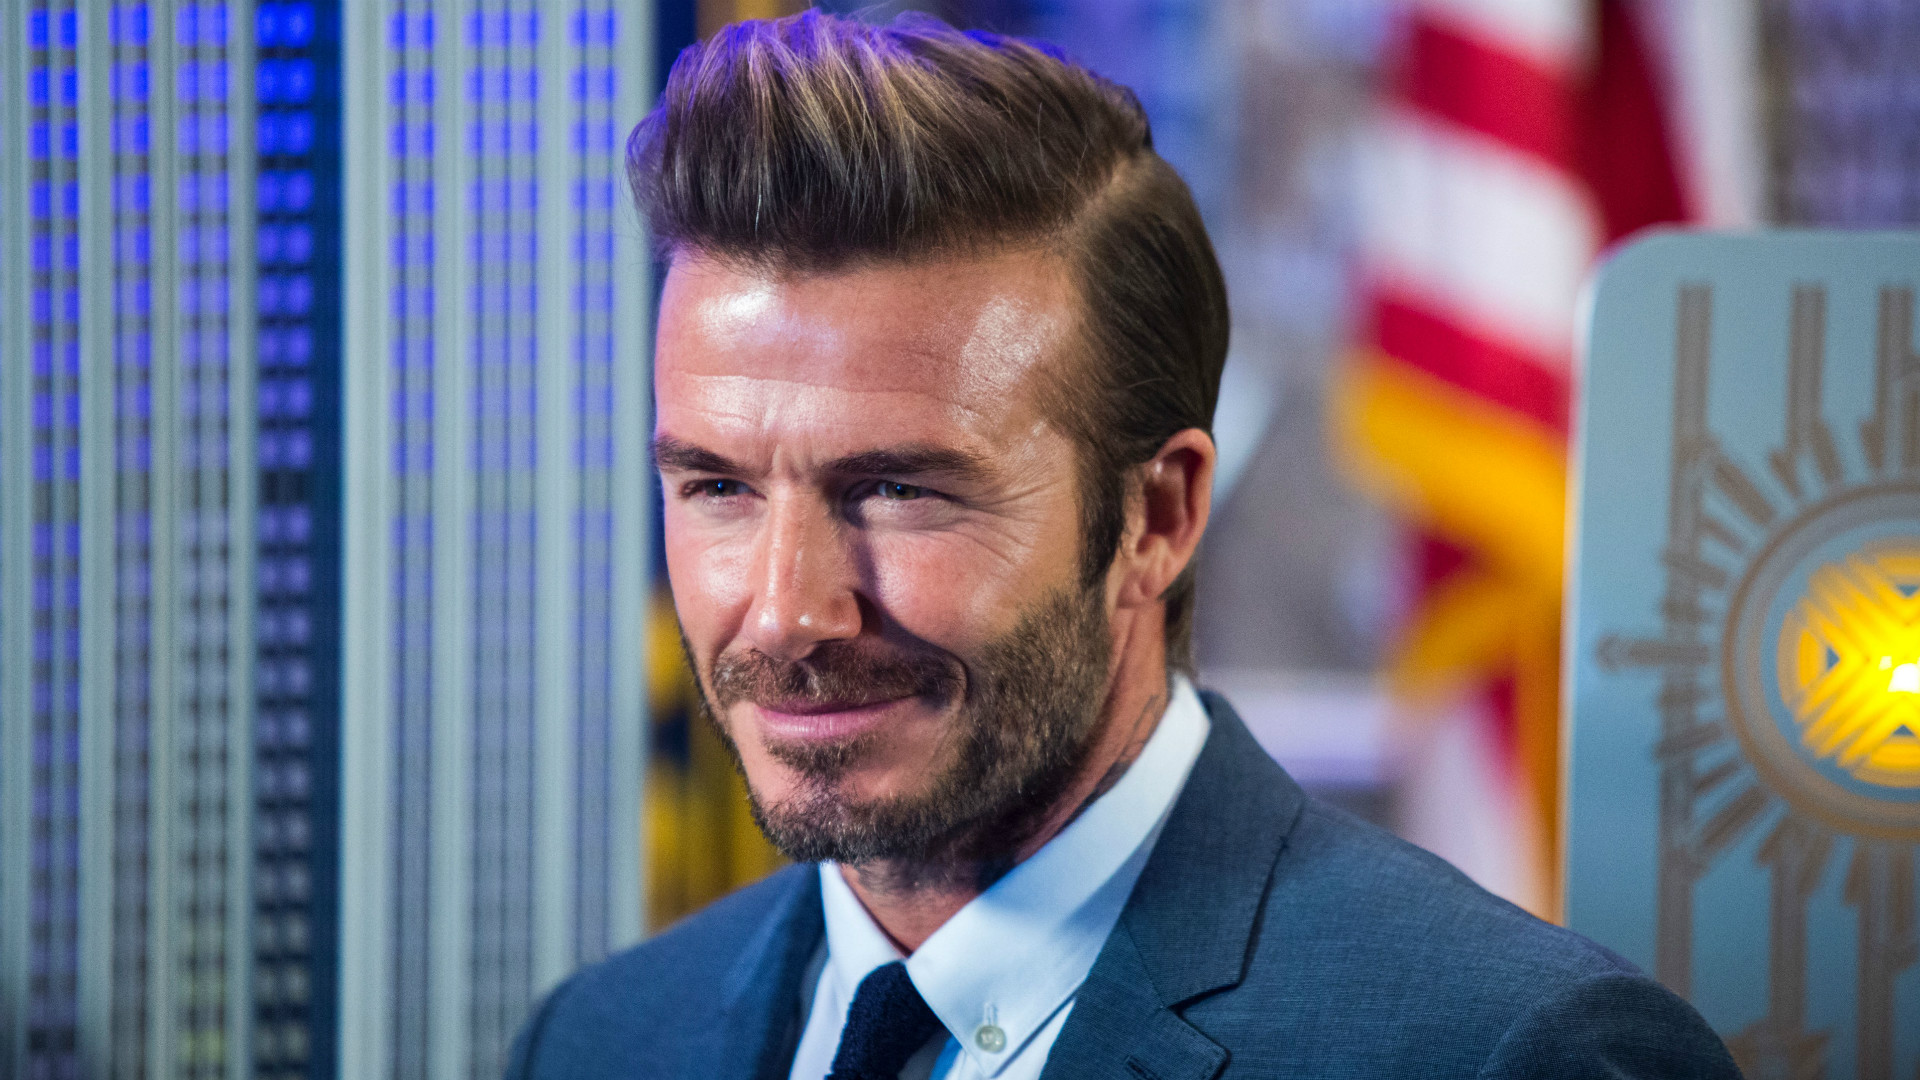 David Beckham shares sweet video of Harper's first football lesson